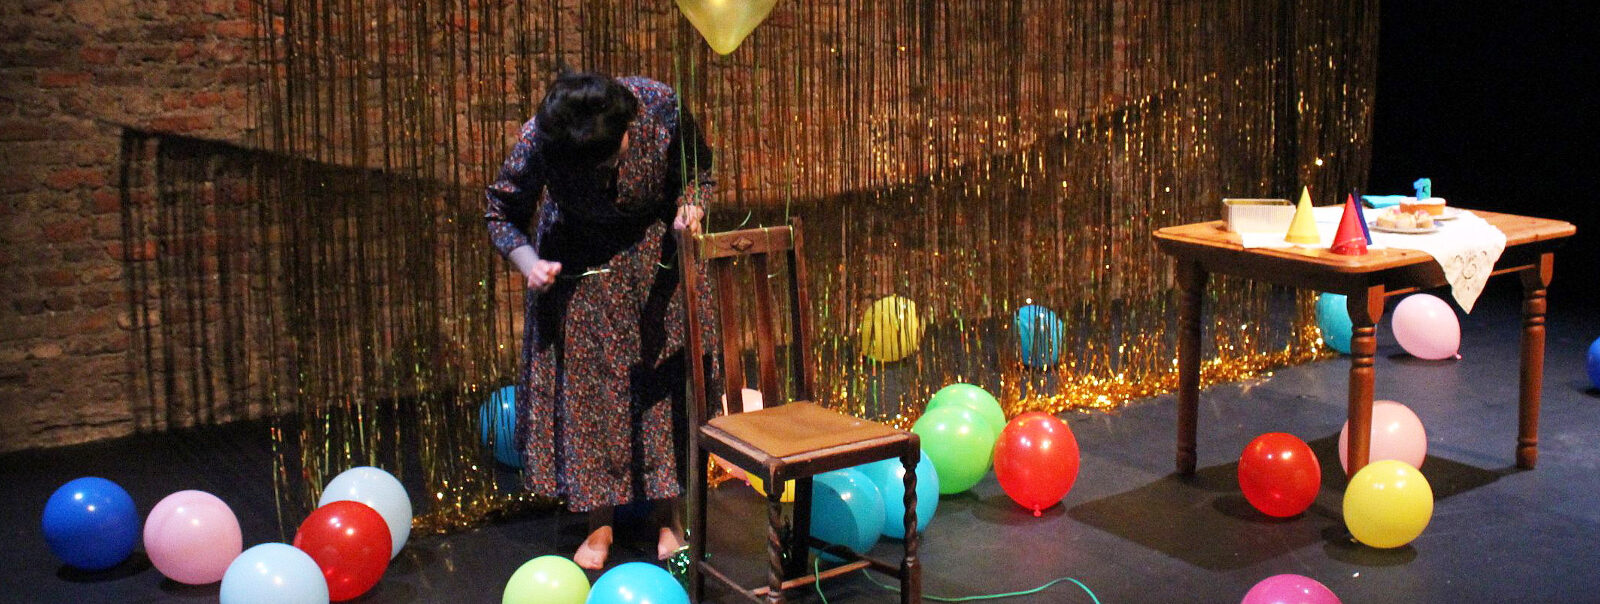 The Birthday Party by Áine O'Hara, at Scene and Heard Festival, Smock Alley Theatre, 2017. Photo by Carla Rogers